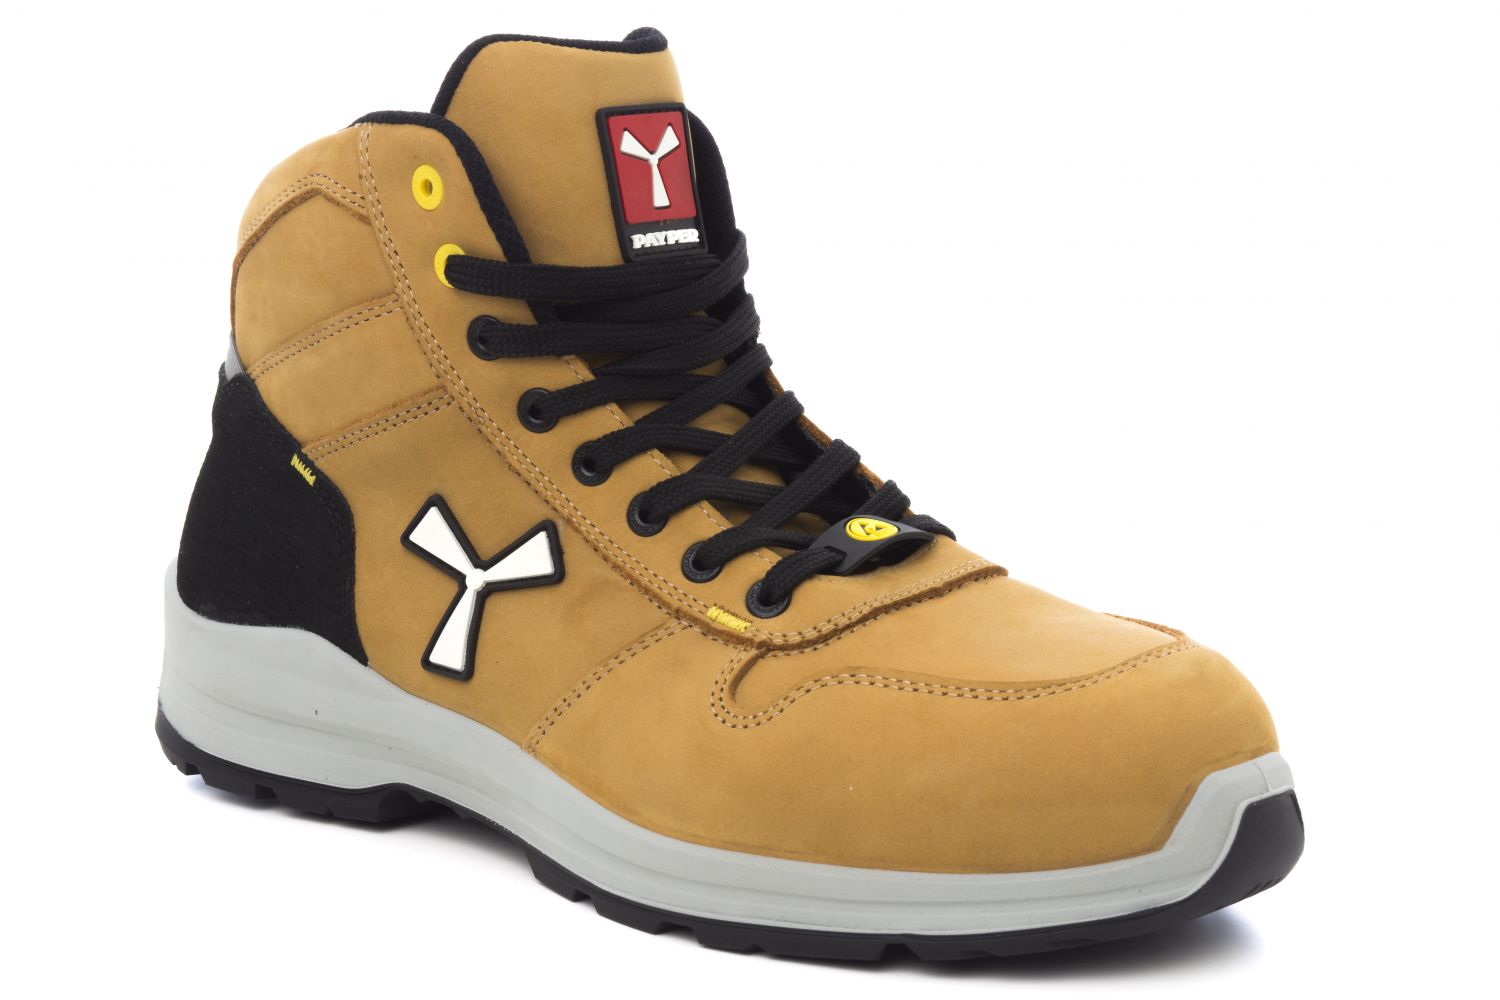 BOTA PAYPER para MUJER  GET FORCE MID LADY NBK S3